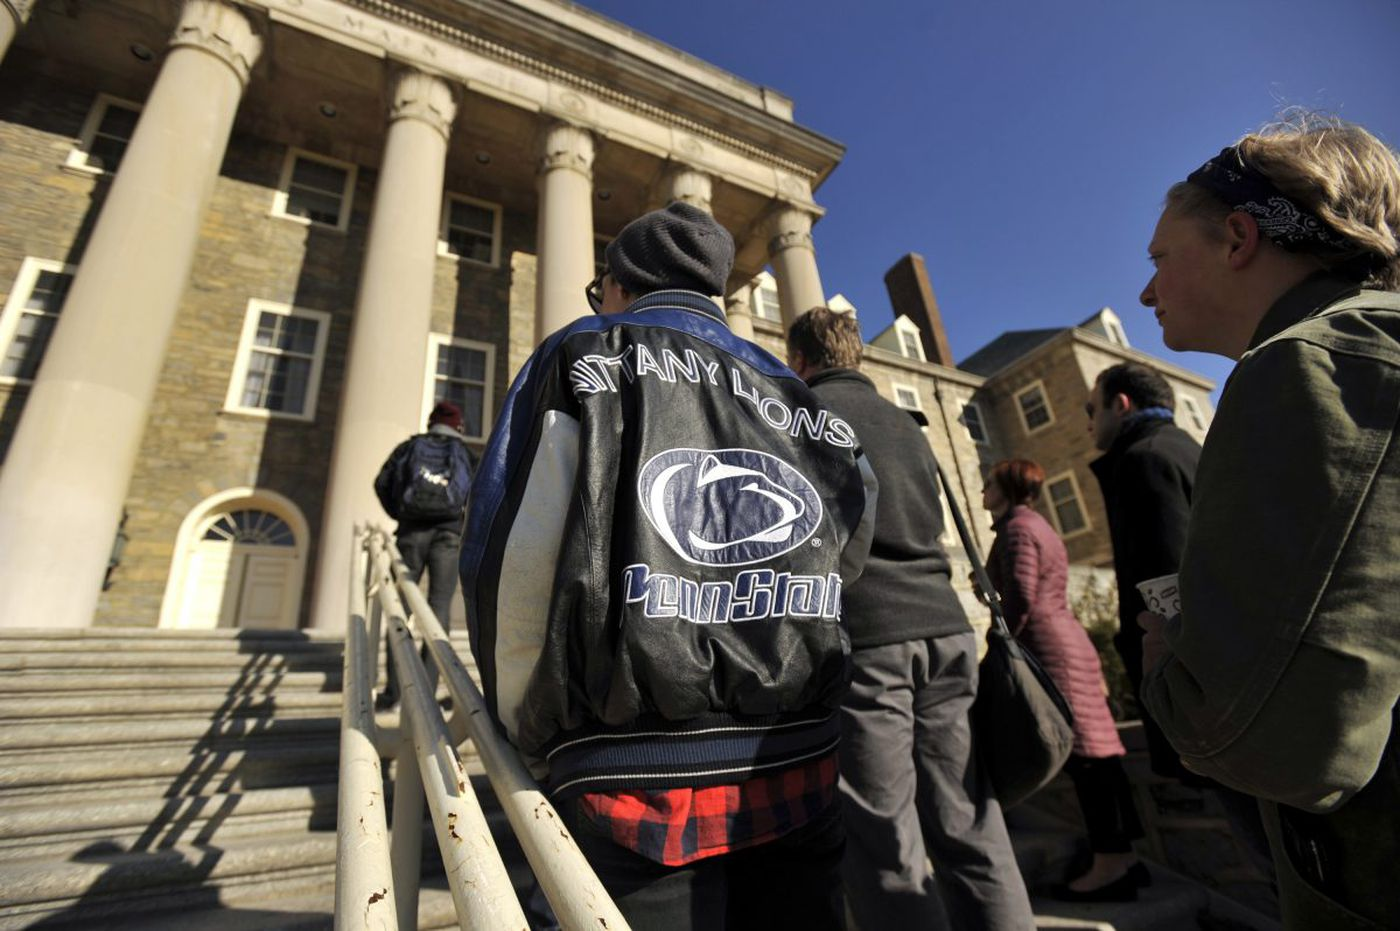 Penn State failing to vet all youth-camp counselors, auditor general says